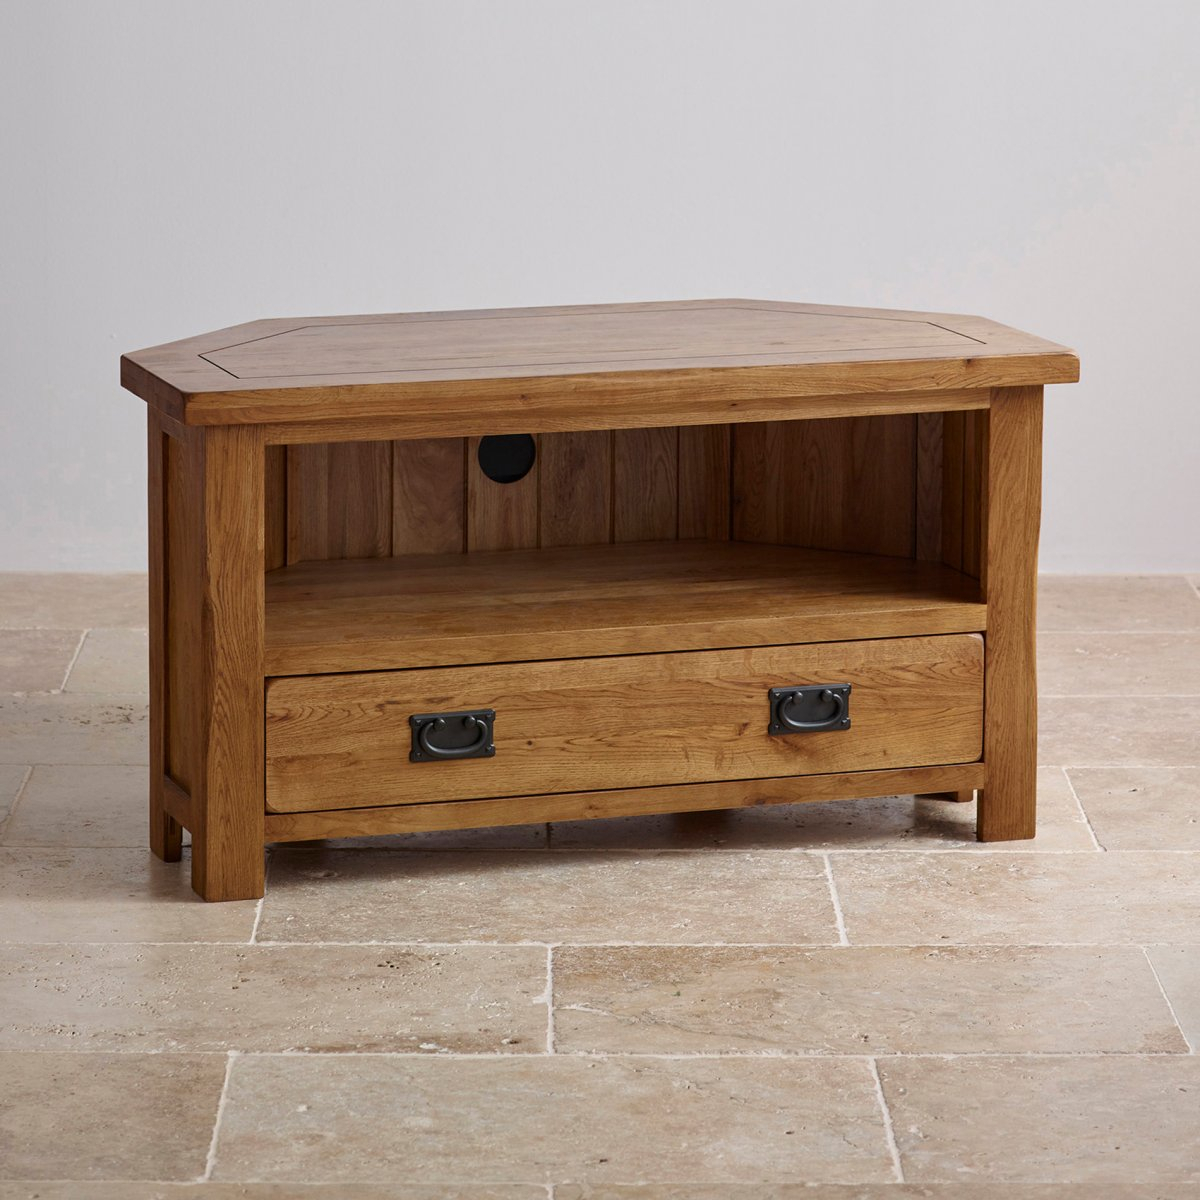 Original Rustic Corner Tv Cabinet In Solid Oak Intended For Wooden Tv Stand Corner Units (View 7 of 15)